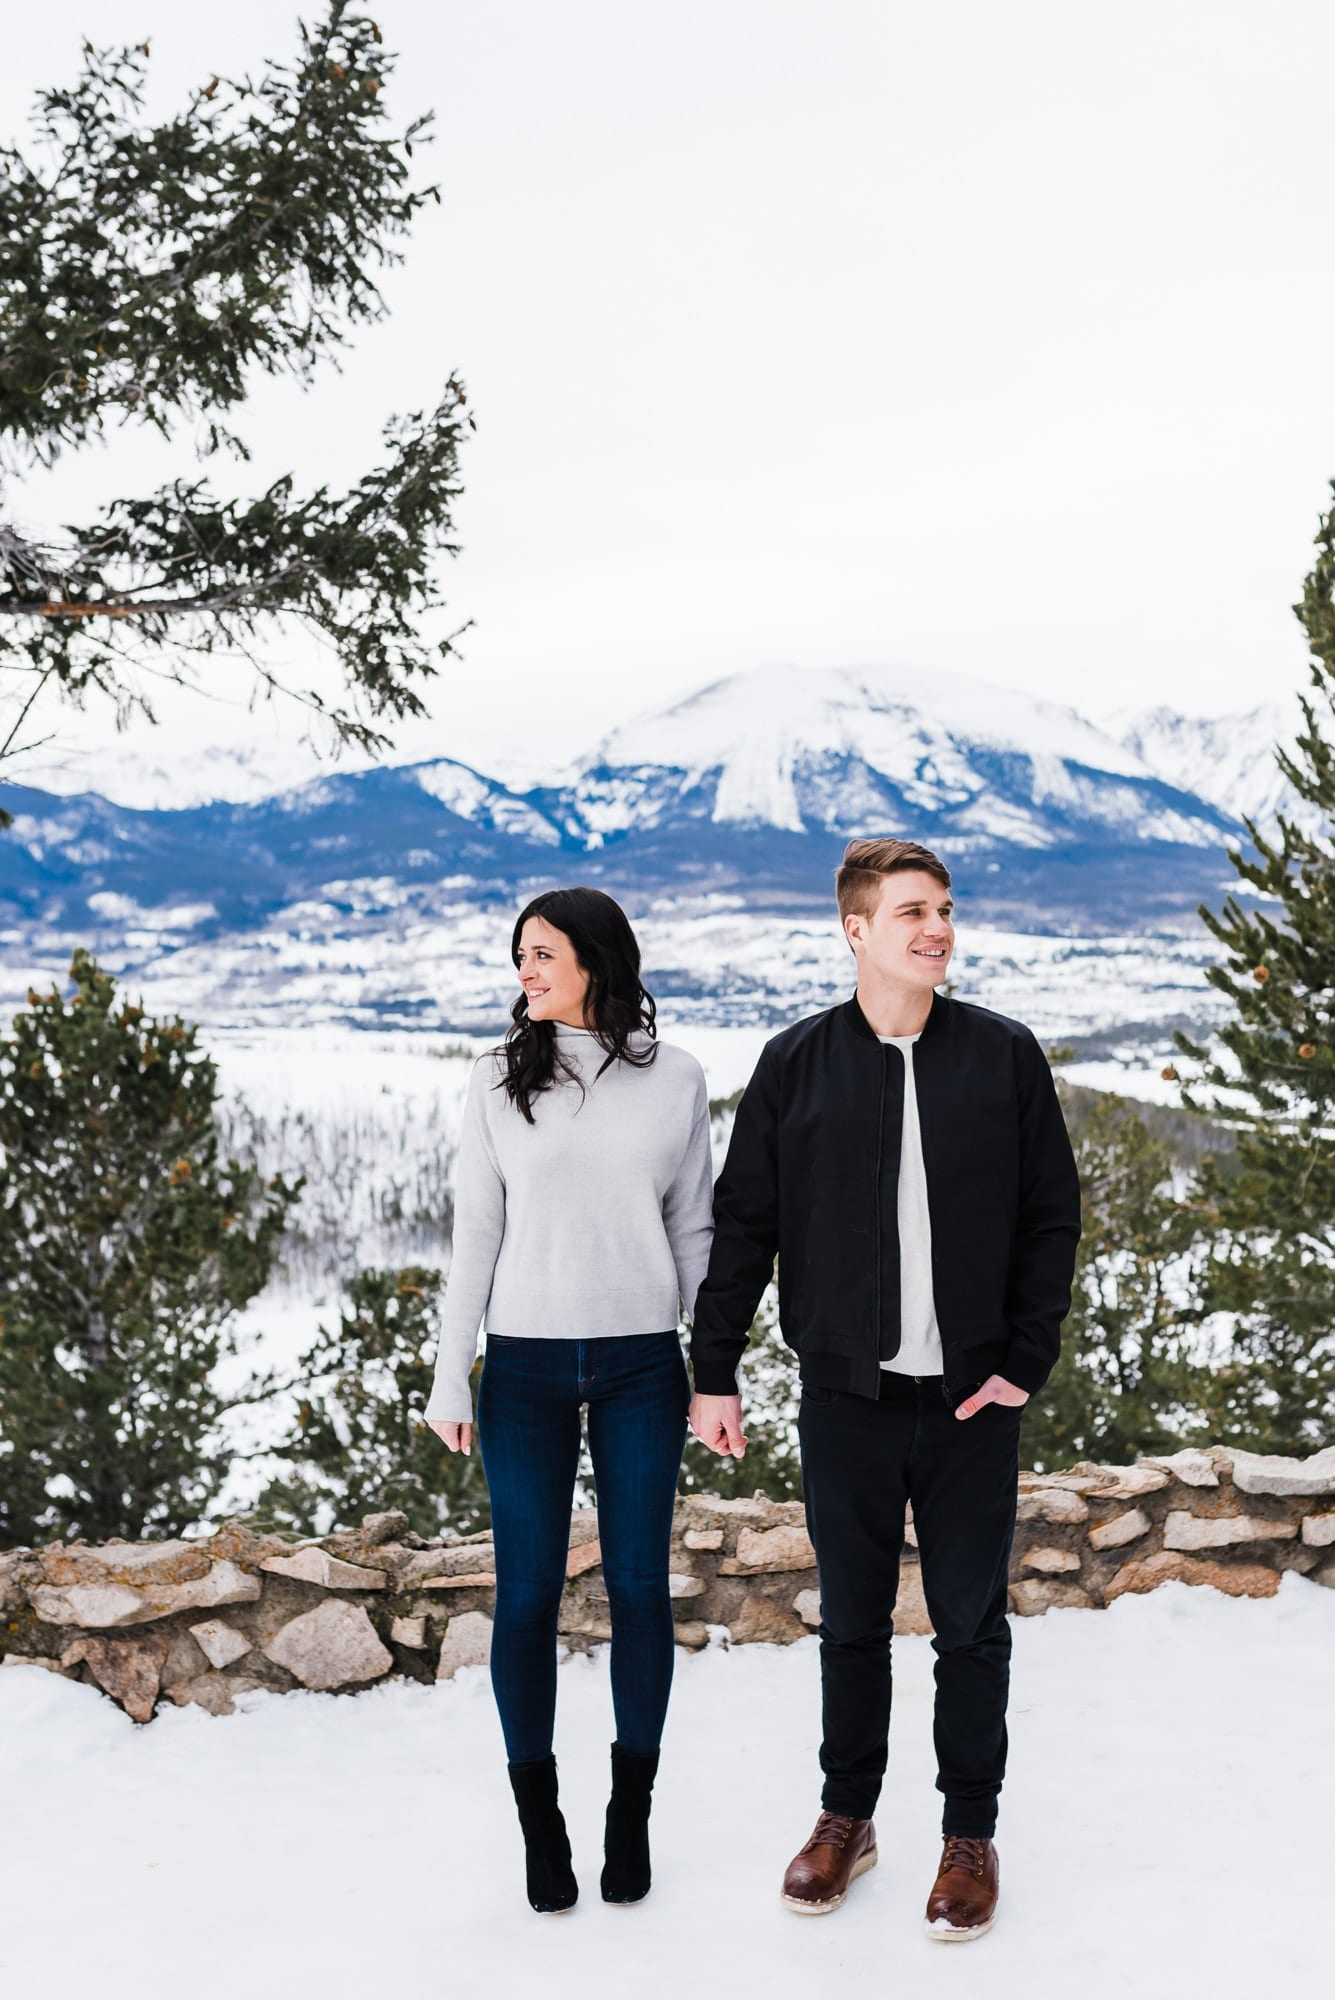 Bright Winter Engagement Photos by Josie V